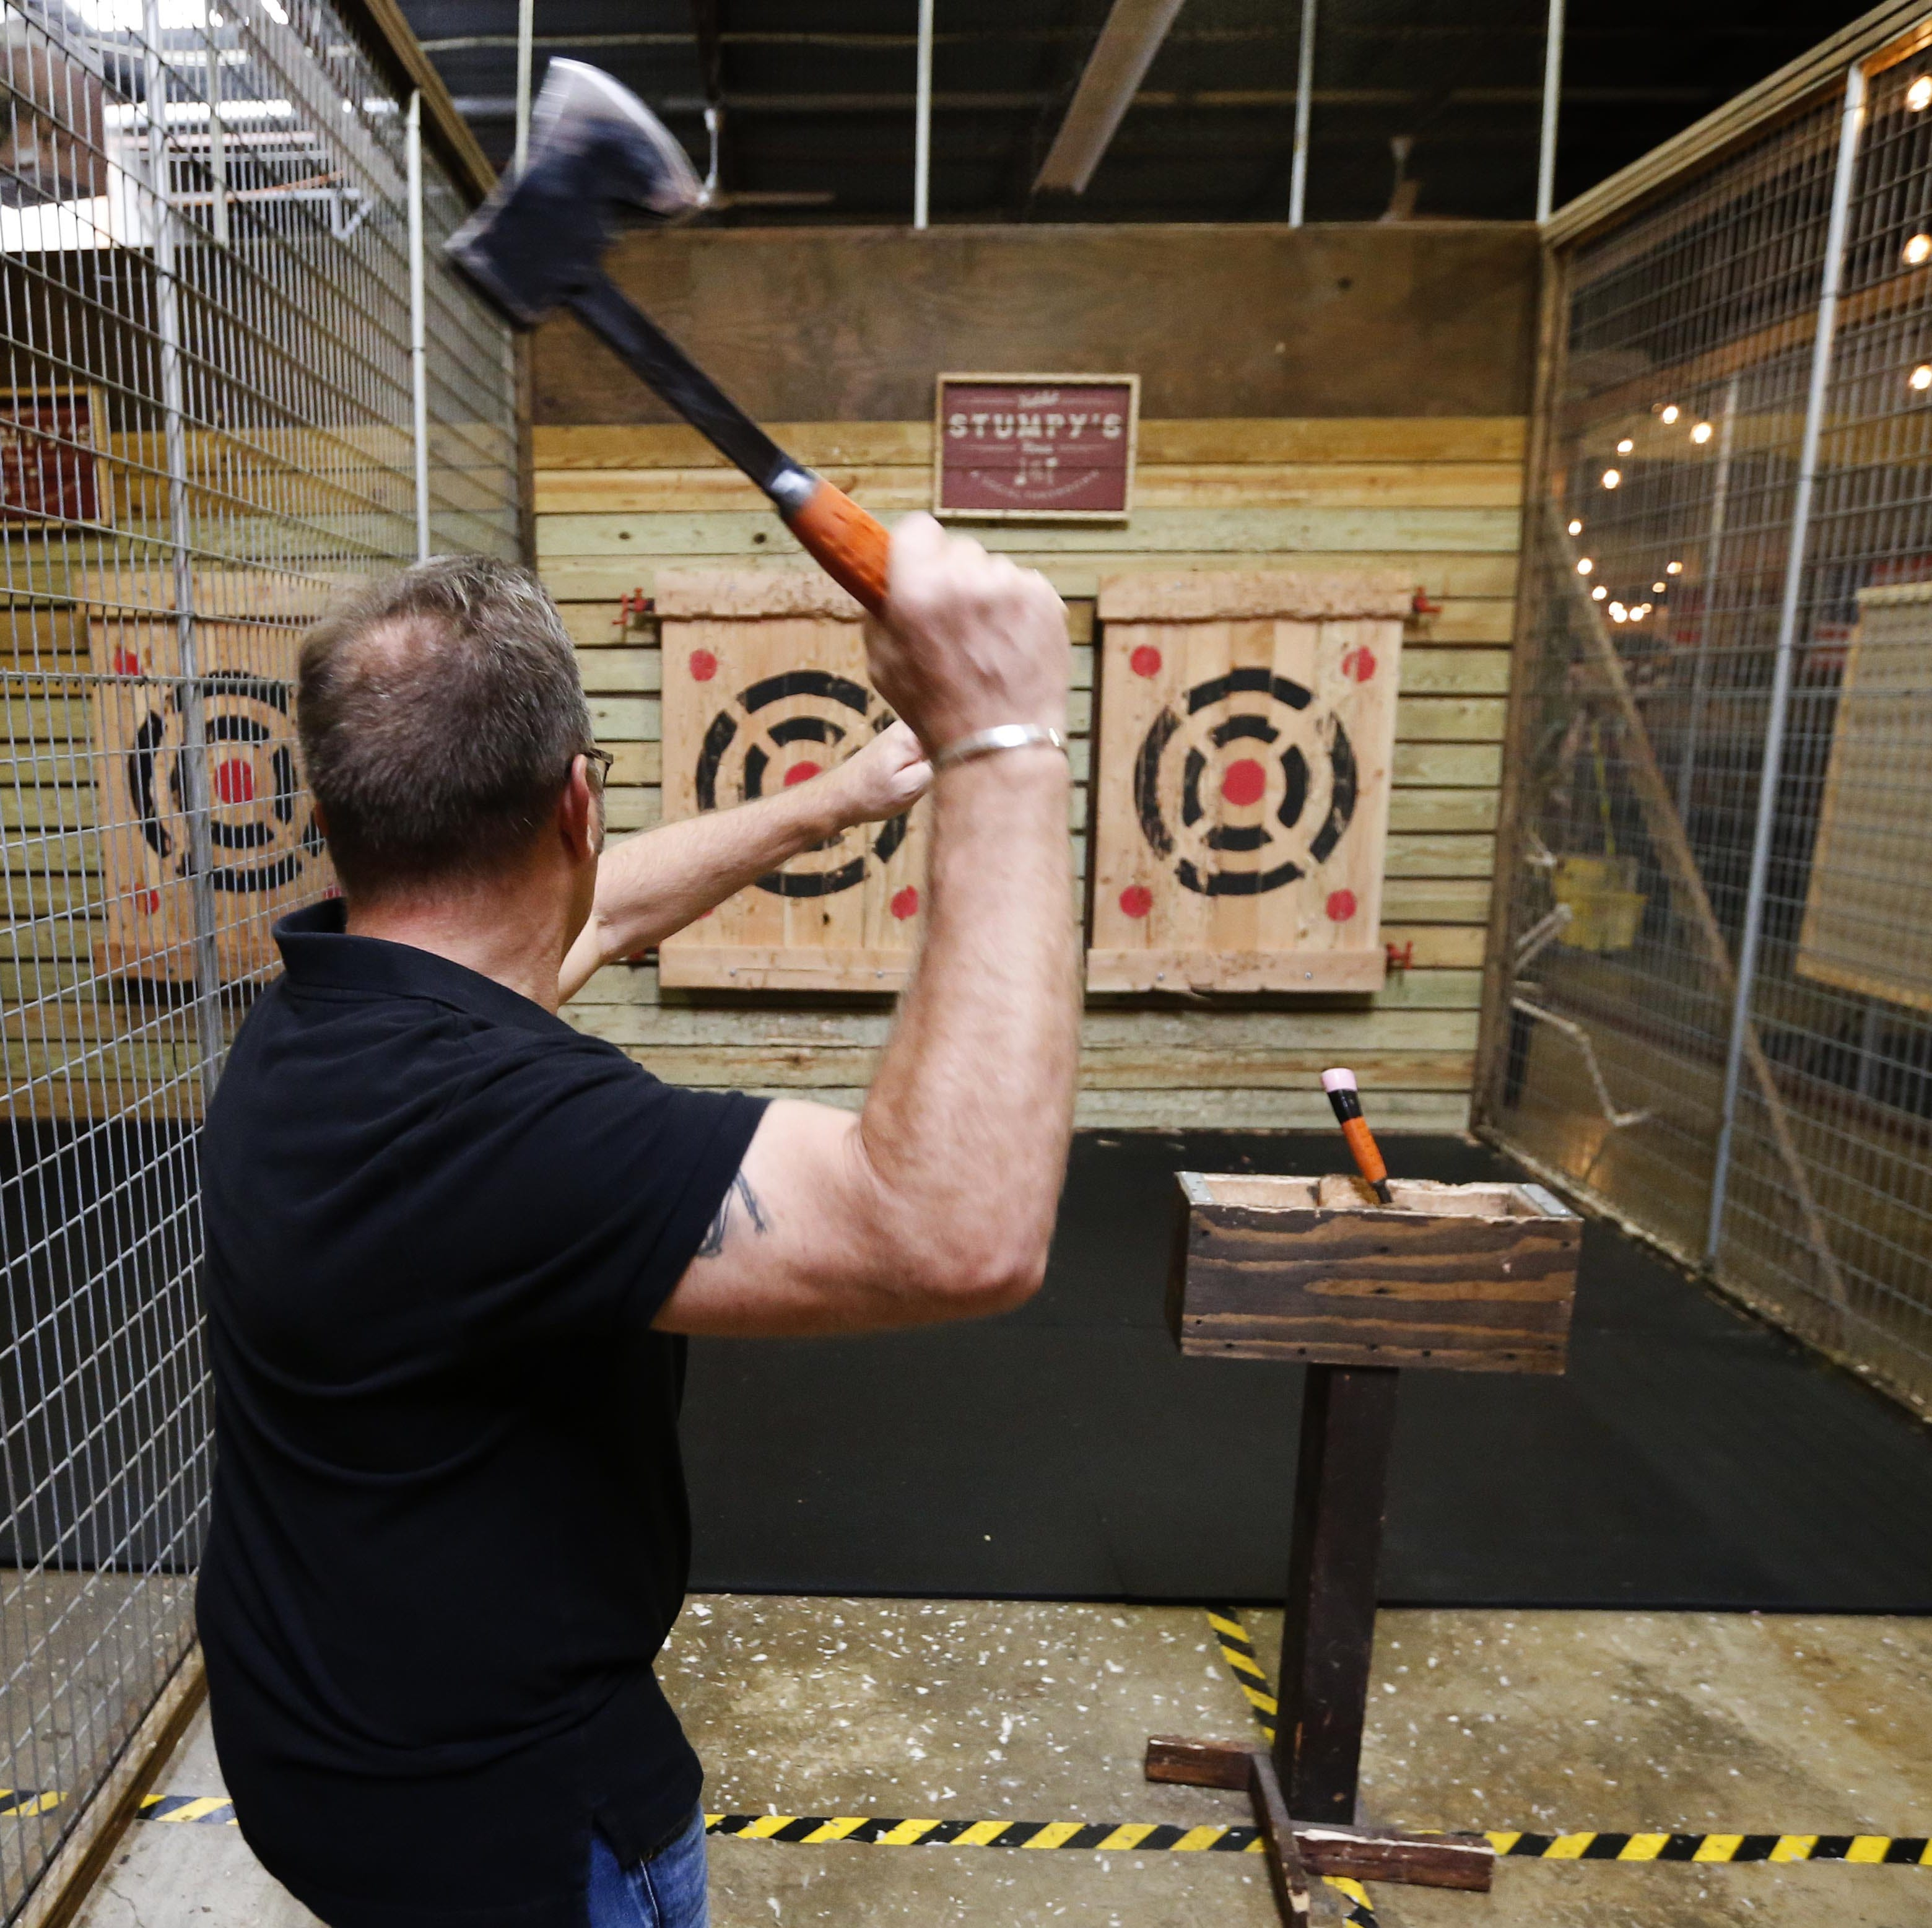 Stumpy's Hatchet House: From school principal to throwing axes for fun